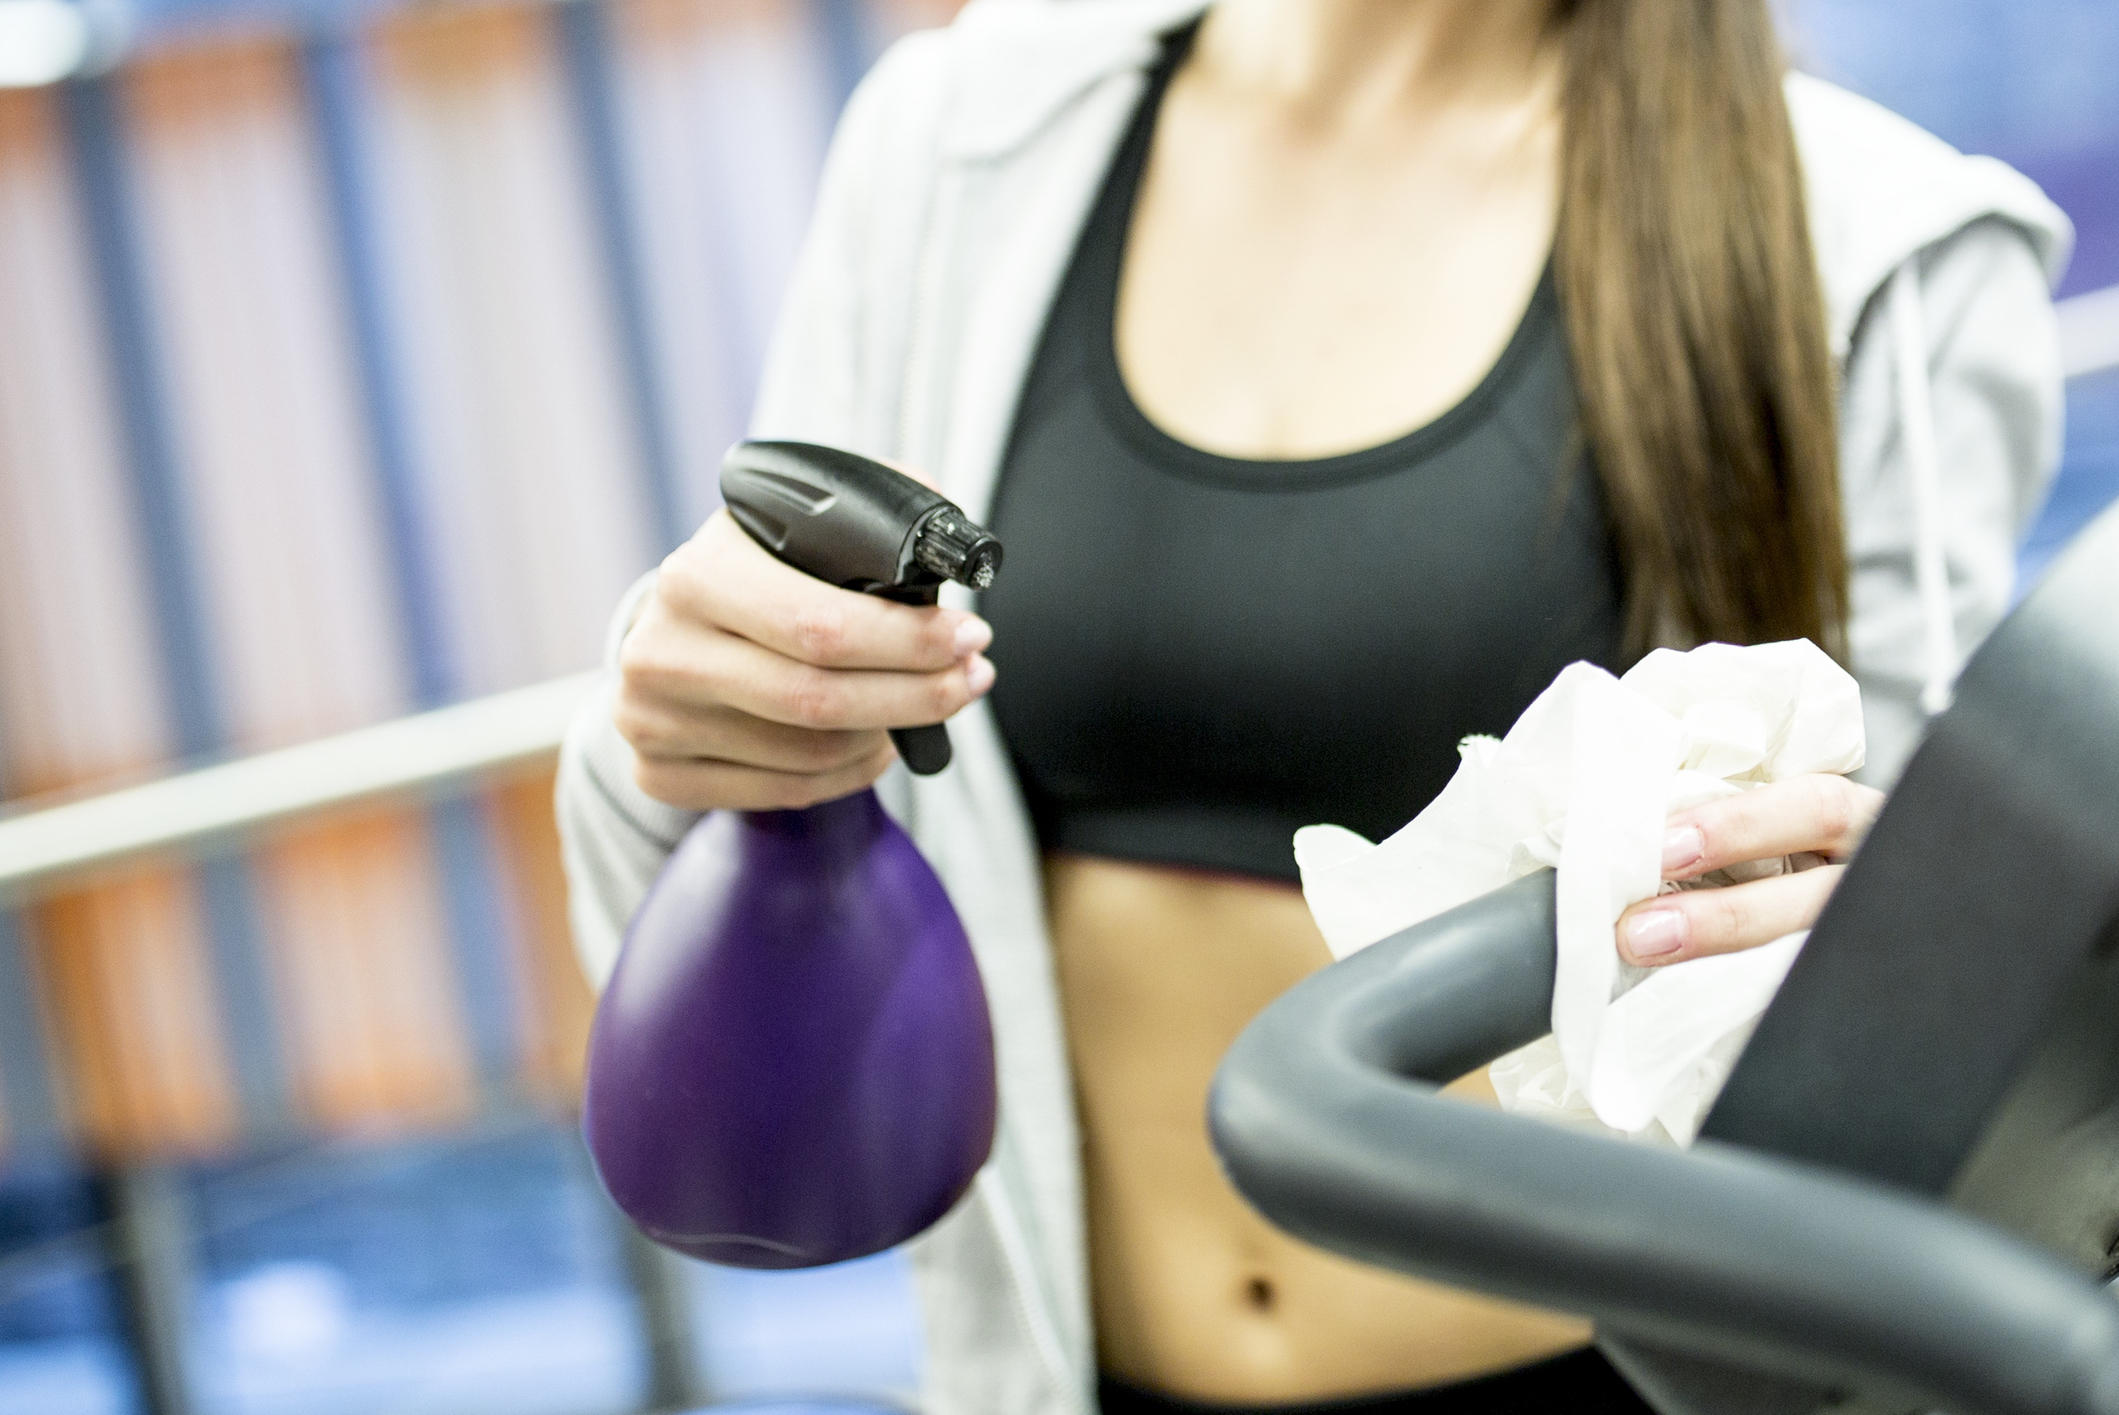 Woman cleaning exercise bike